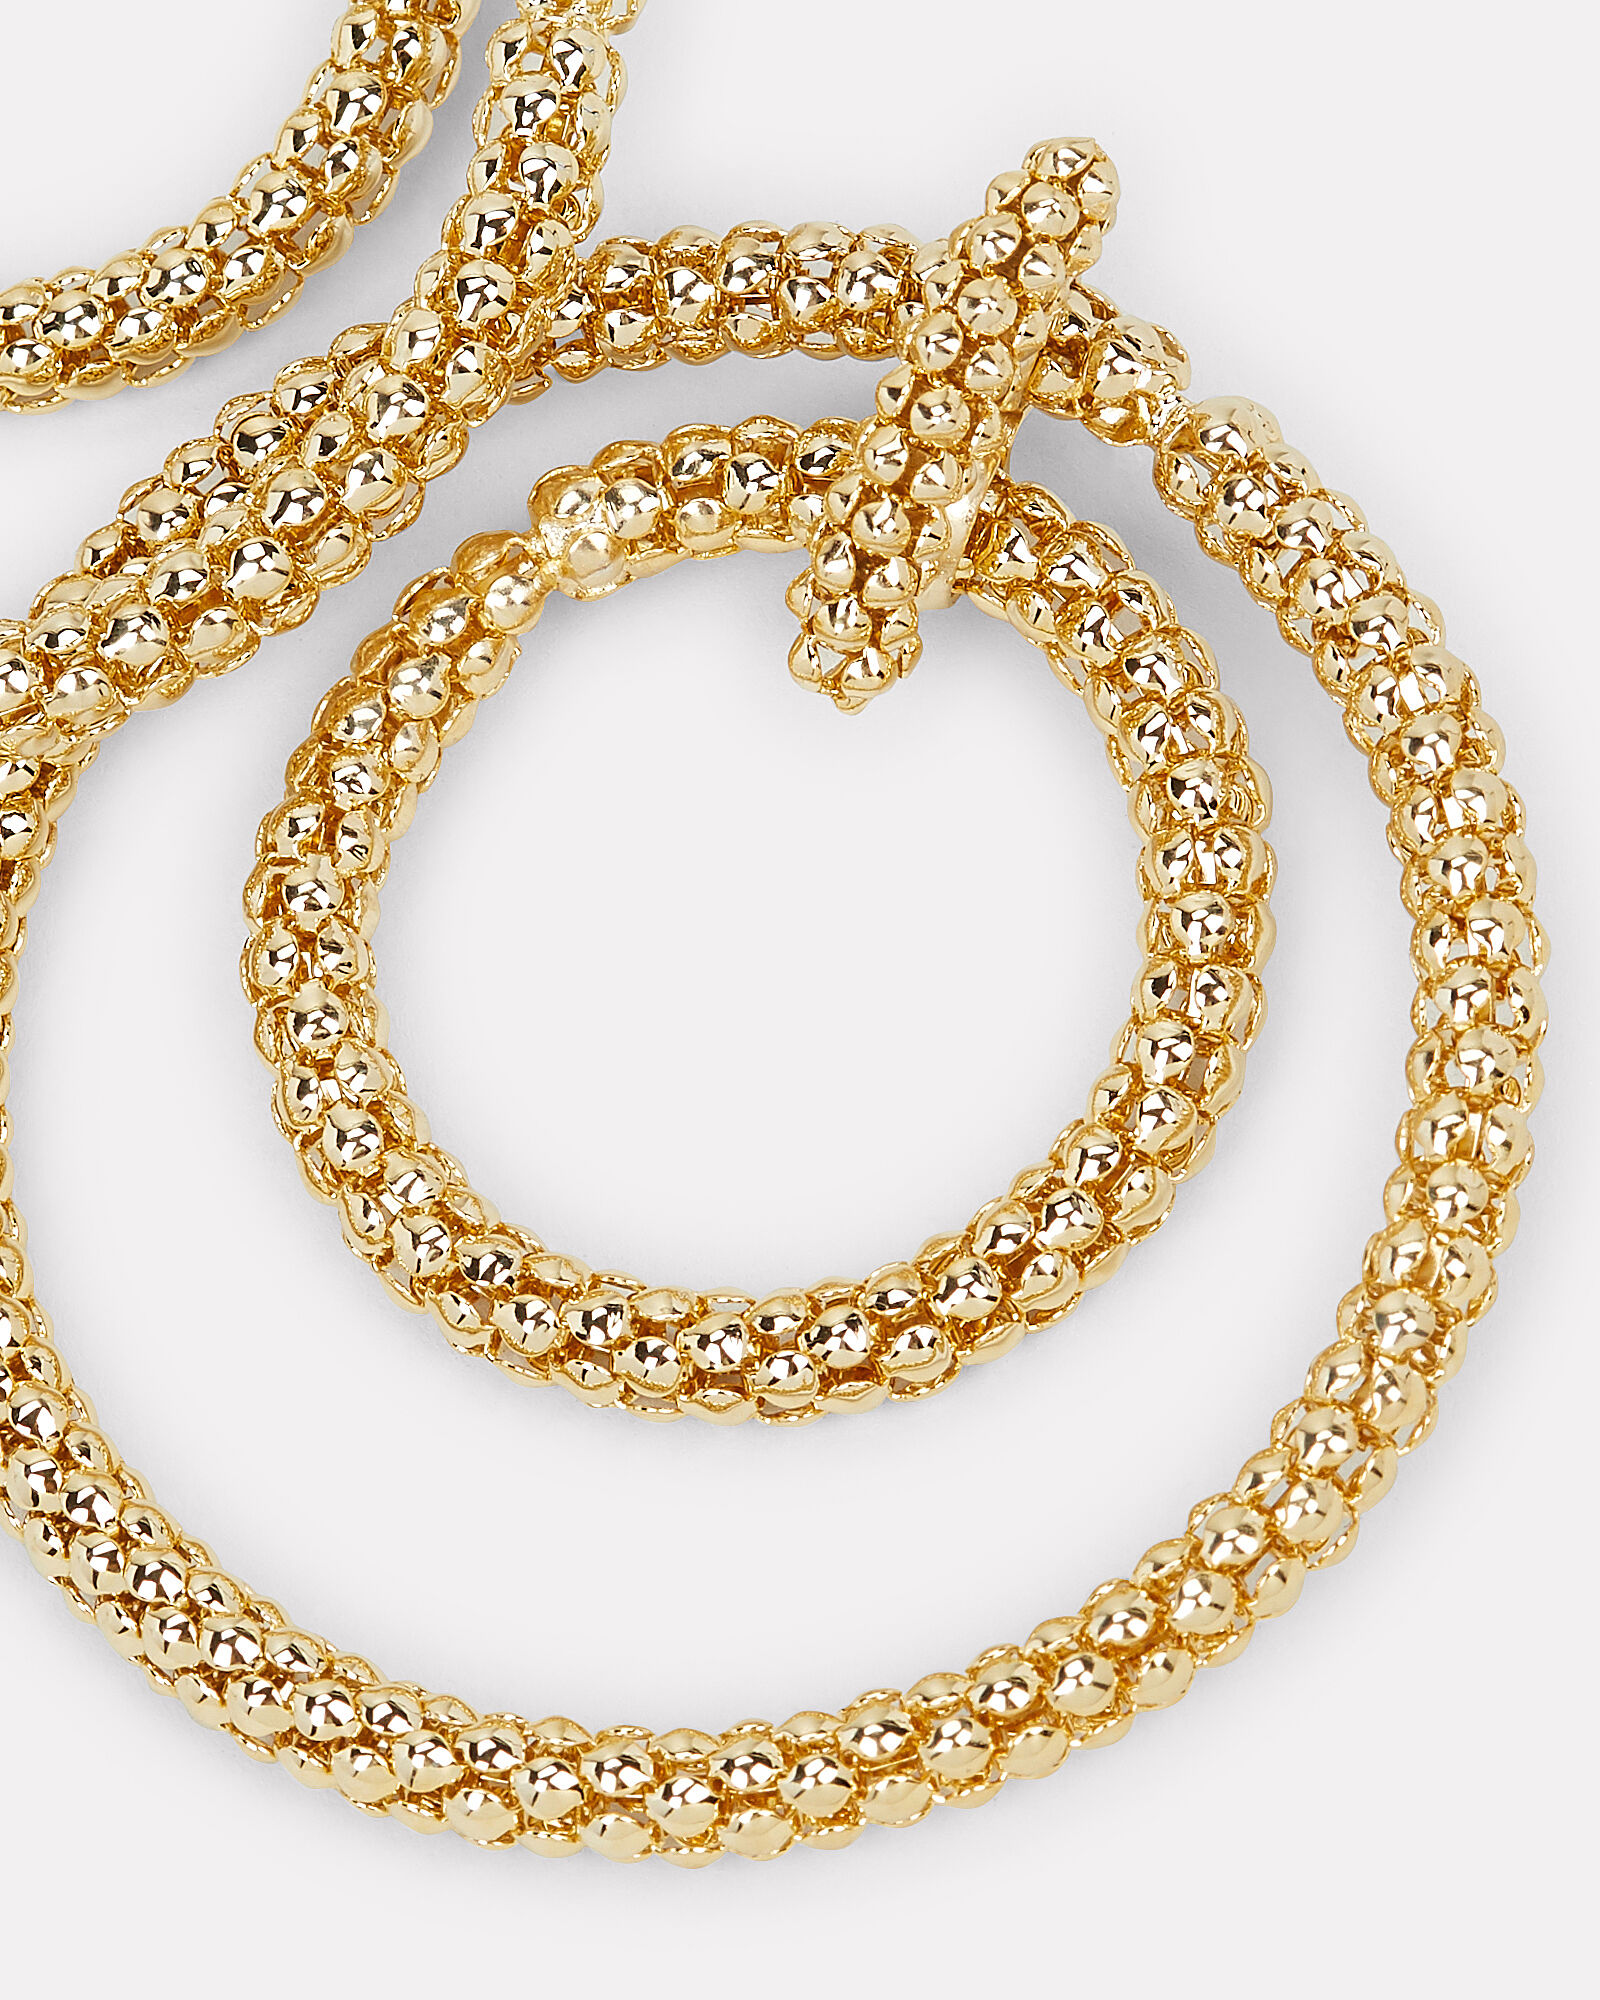 Onore Beaded Gold-tone Hoops, GOLD, hi-res